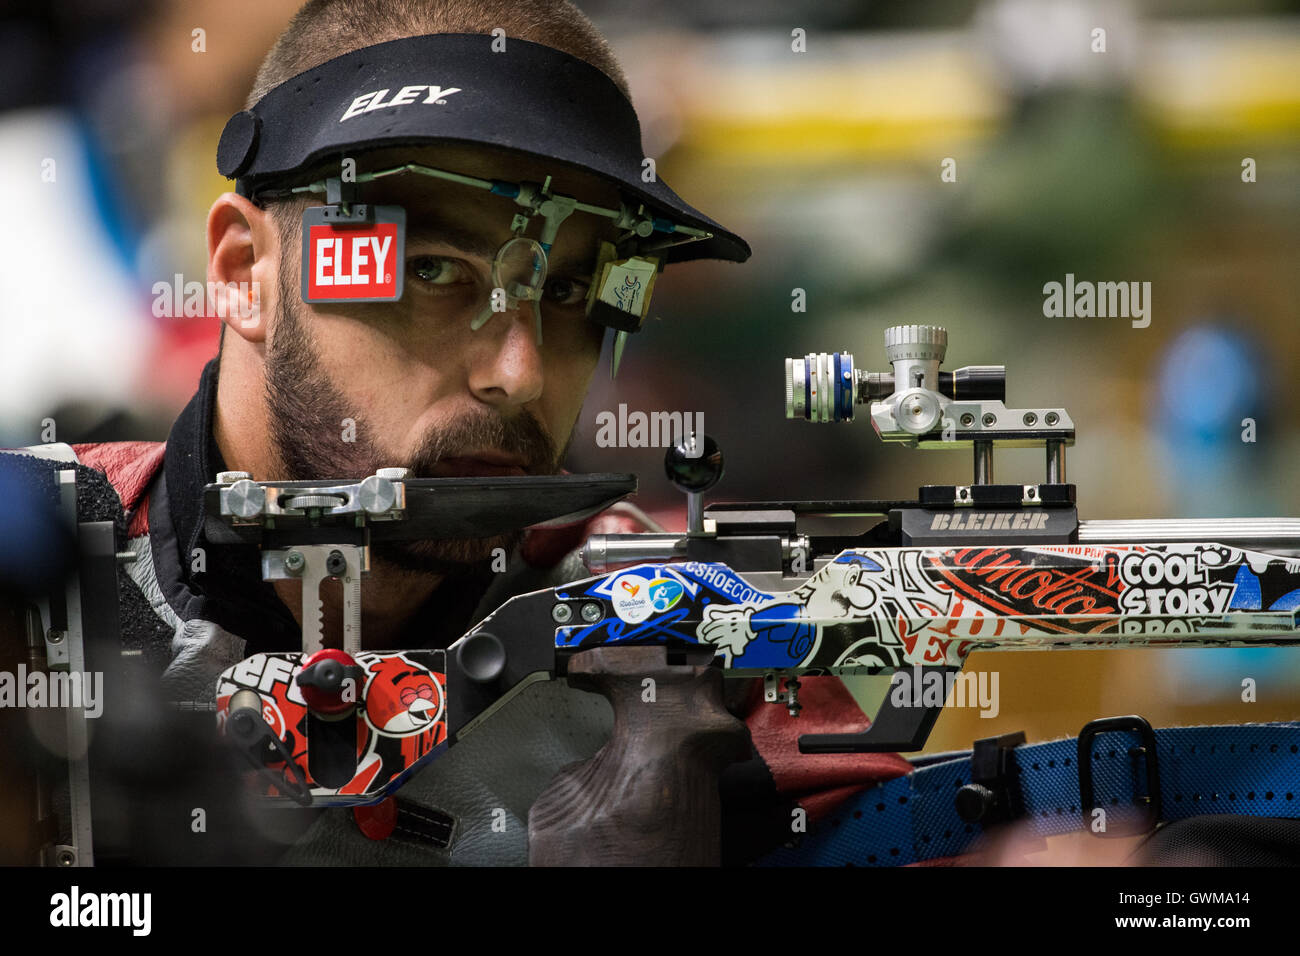 Great Britain's Matt Skelhon competing in the R6 - Mixed 50m Rifle Prone SH1 Final at the Olympic Shooting Centre - Stock Image